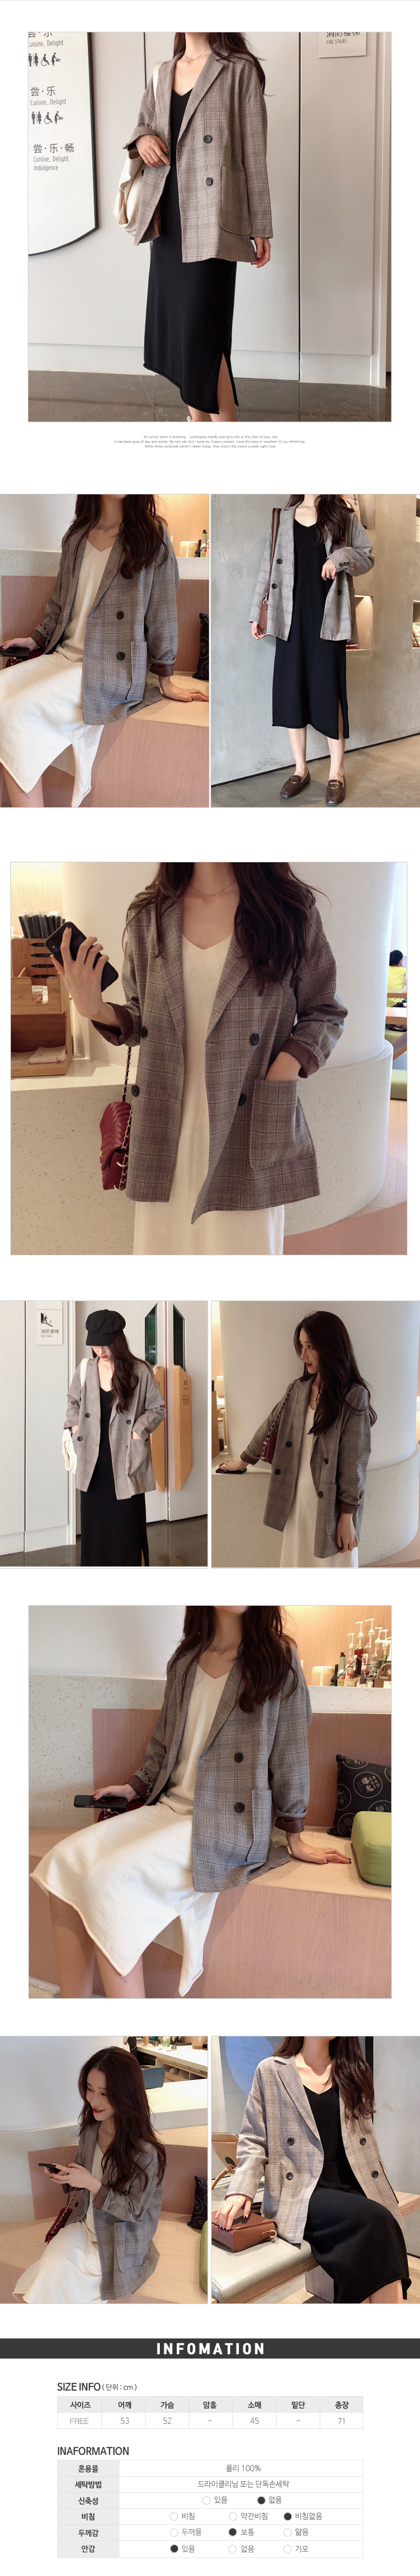 Hershey Check Jacket